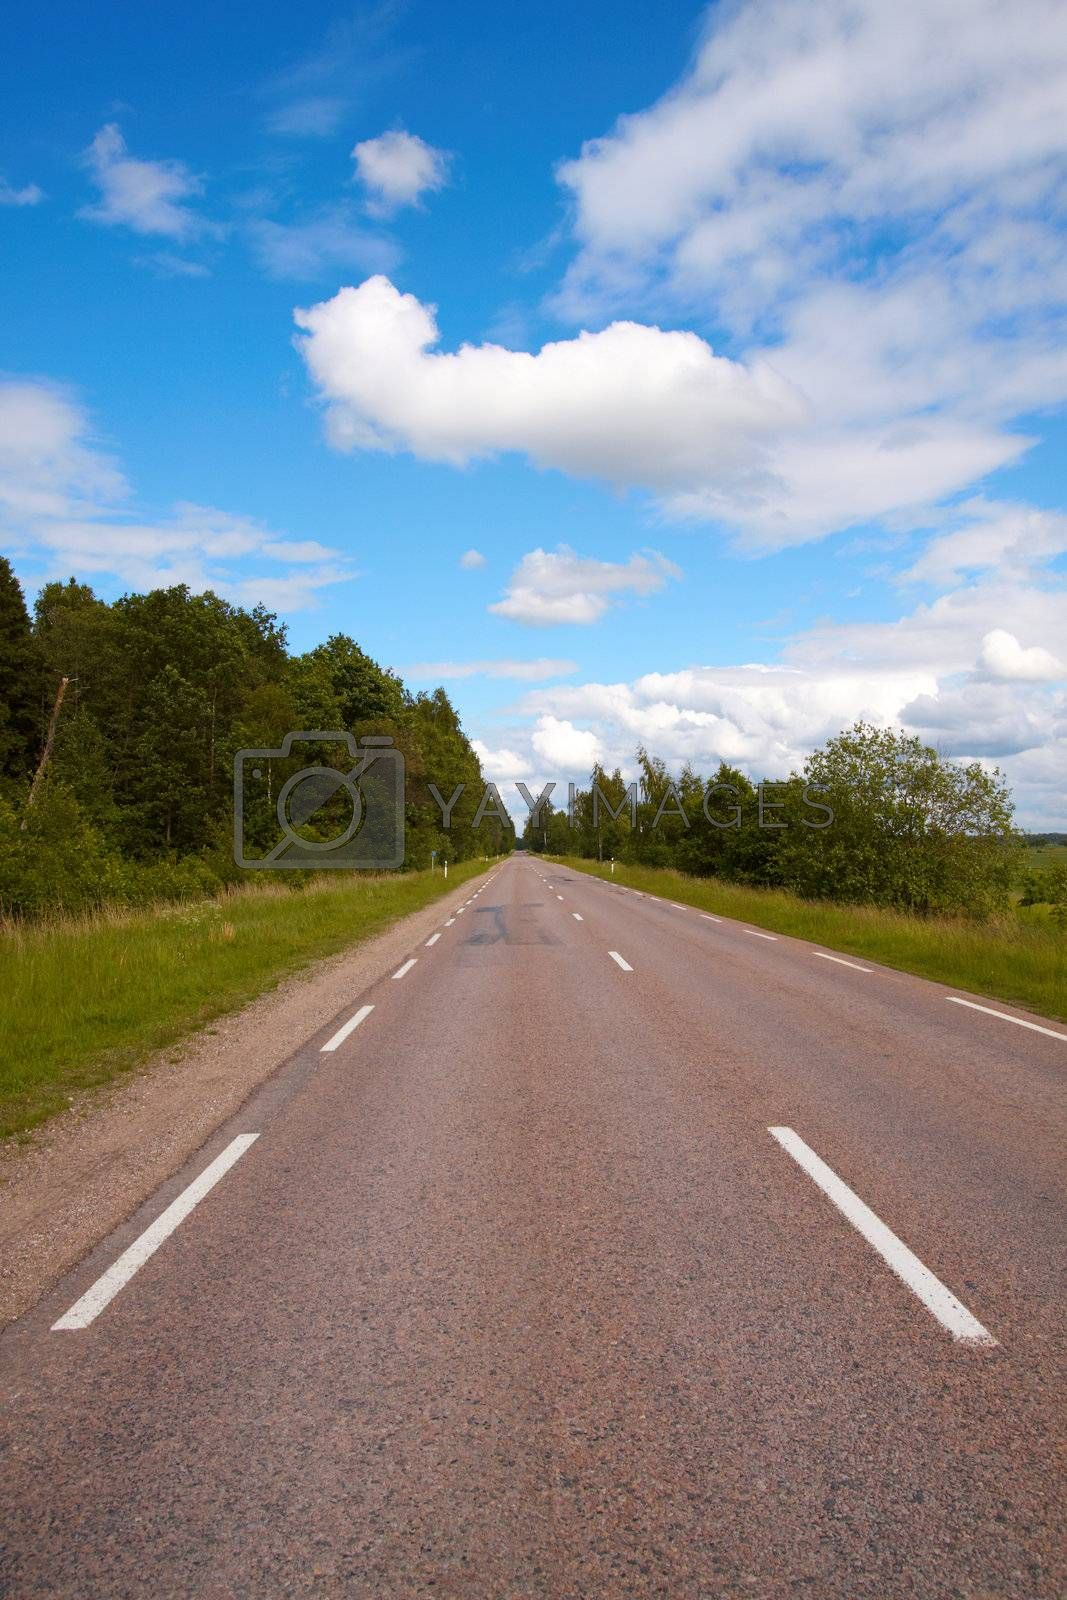 Road, freeway seemingly disappearing into the horizon. Sunny summer day. Transportation, travel concept